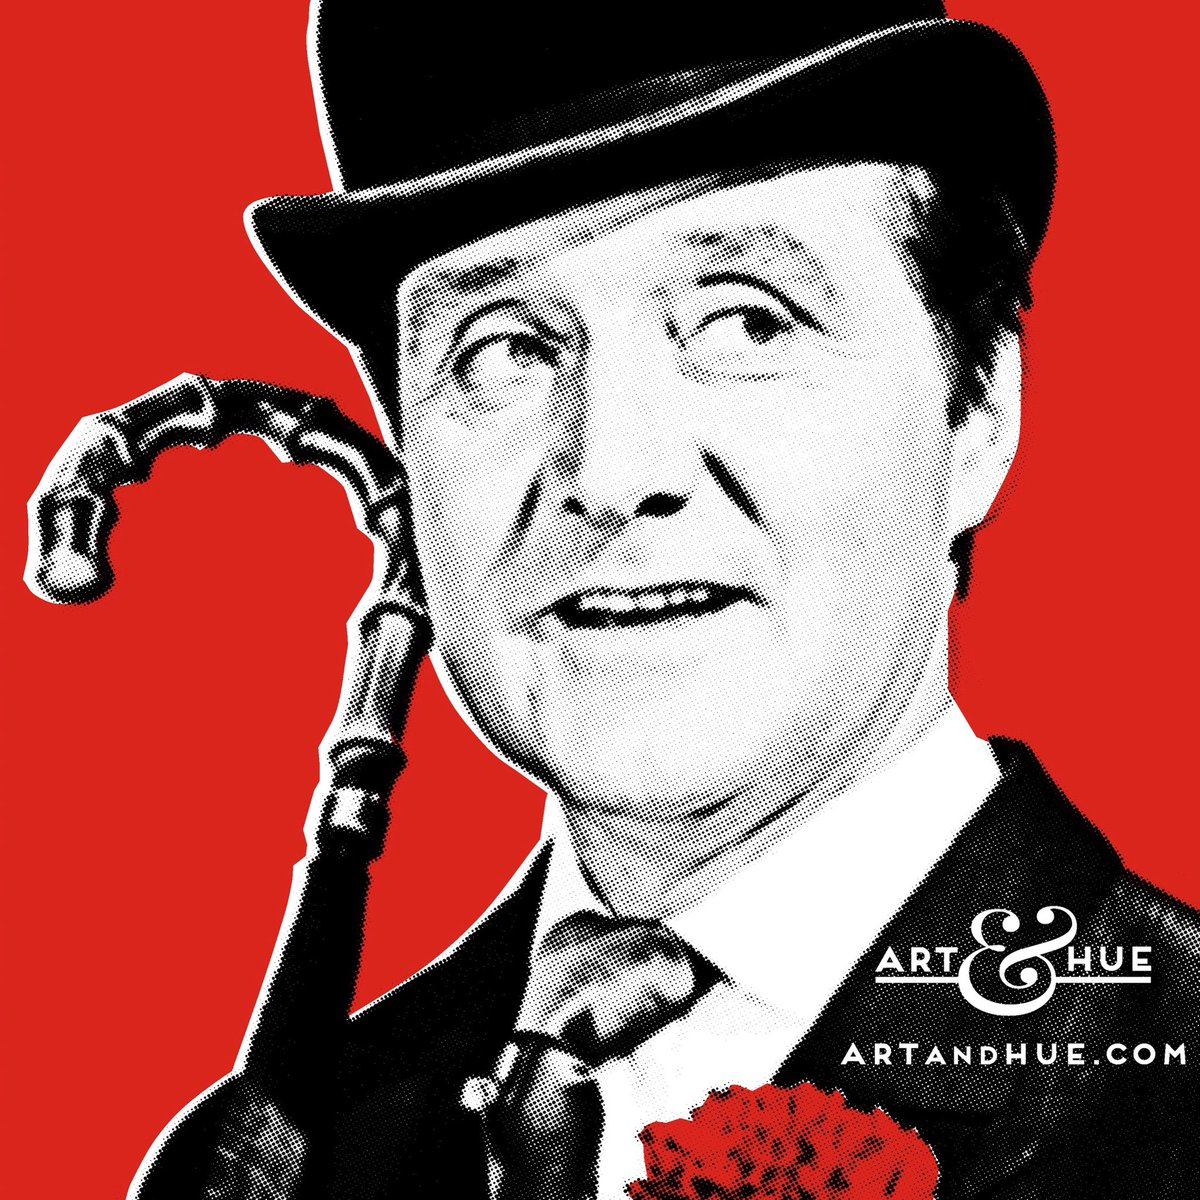 Remembering #PatrickMacnee who passed two years ago #OnThisDay. Sadly missed but #JohnSteed is an enduring legacy  http:// artandhue.com/theavengers  &nbsp;  <br>http://pic.twitter.com/Ezej9oiA2o